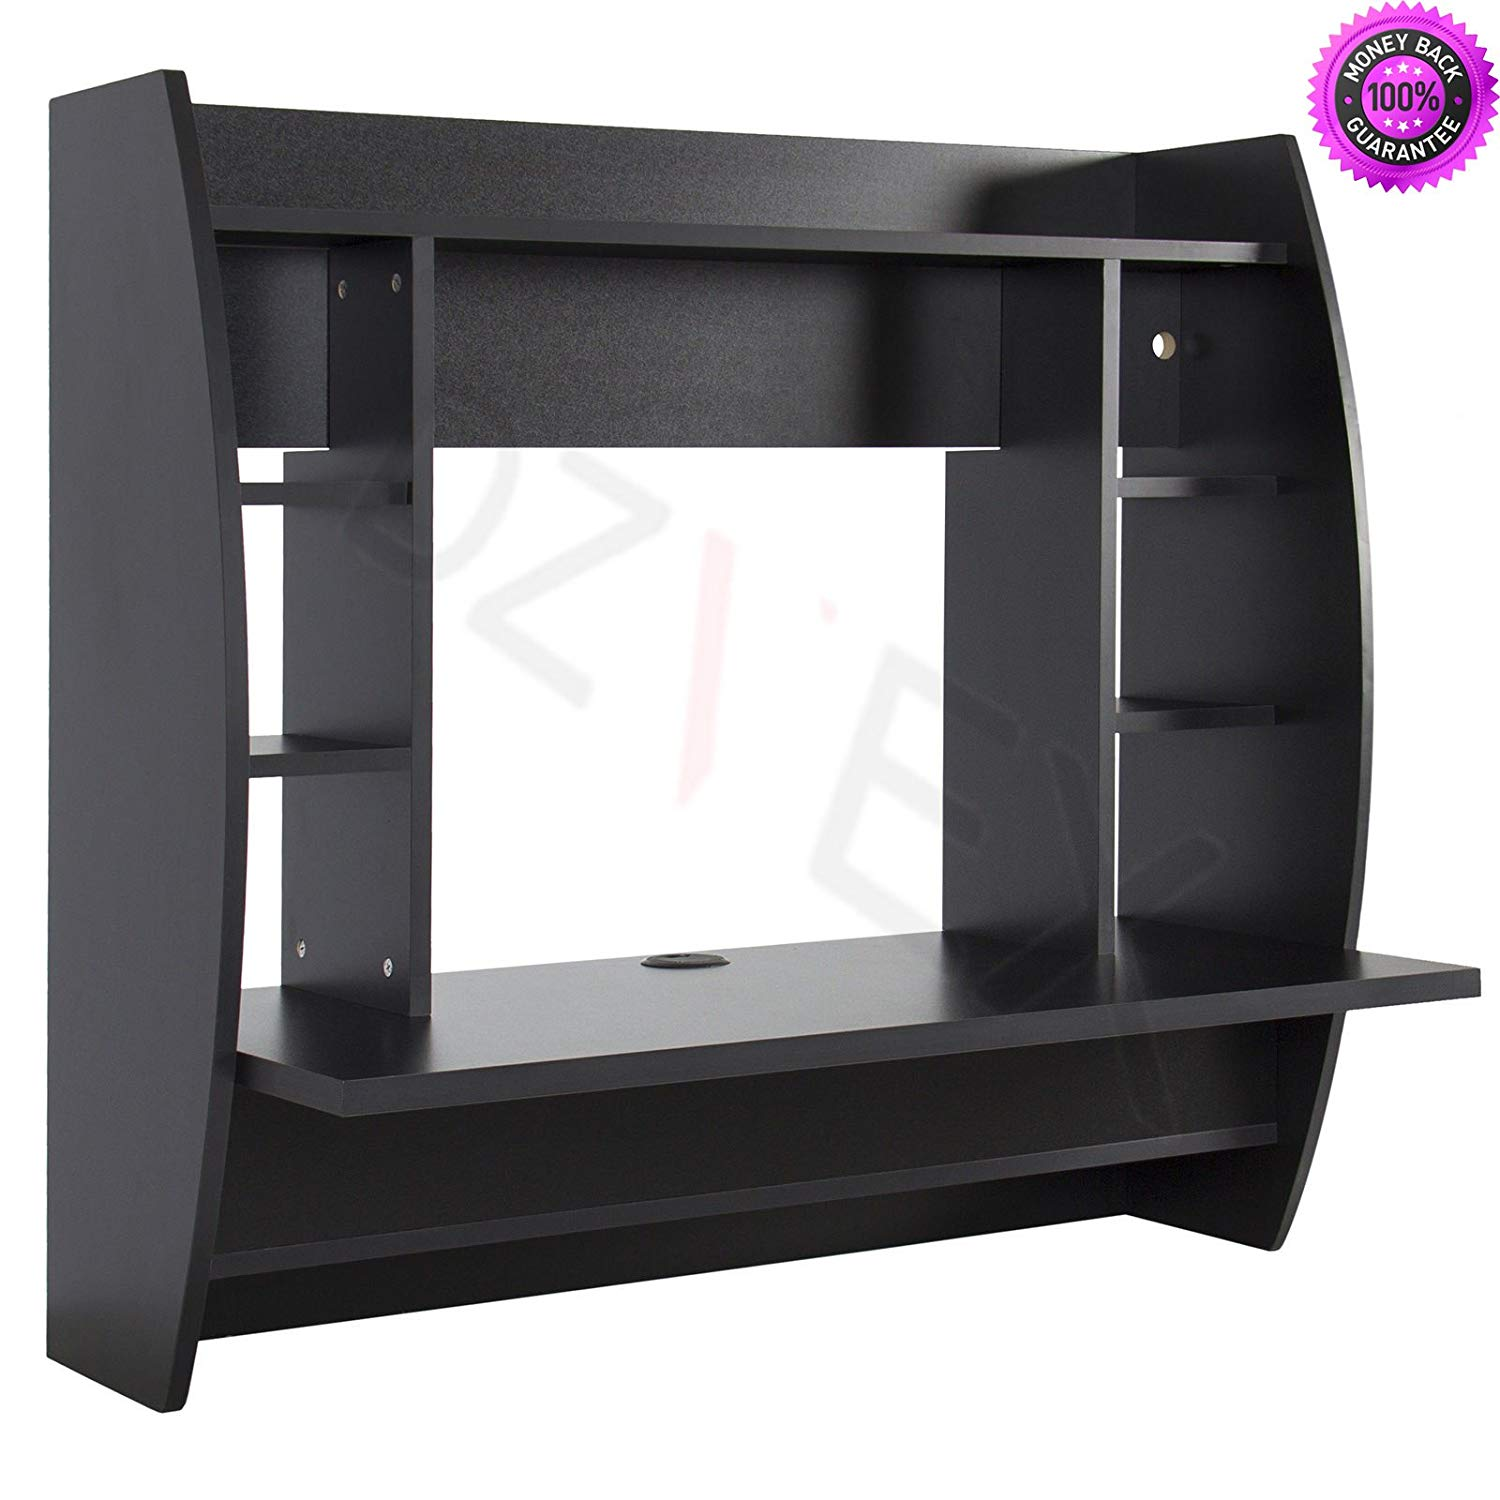 DzVeX__Wall Mount Floating Computer Desk With Storage Shelves Home Work Station- Black And folding tables accent tables furniture furniture tables wood tables small tables plastic tables